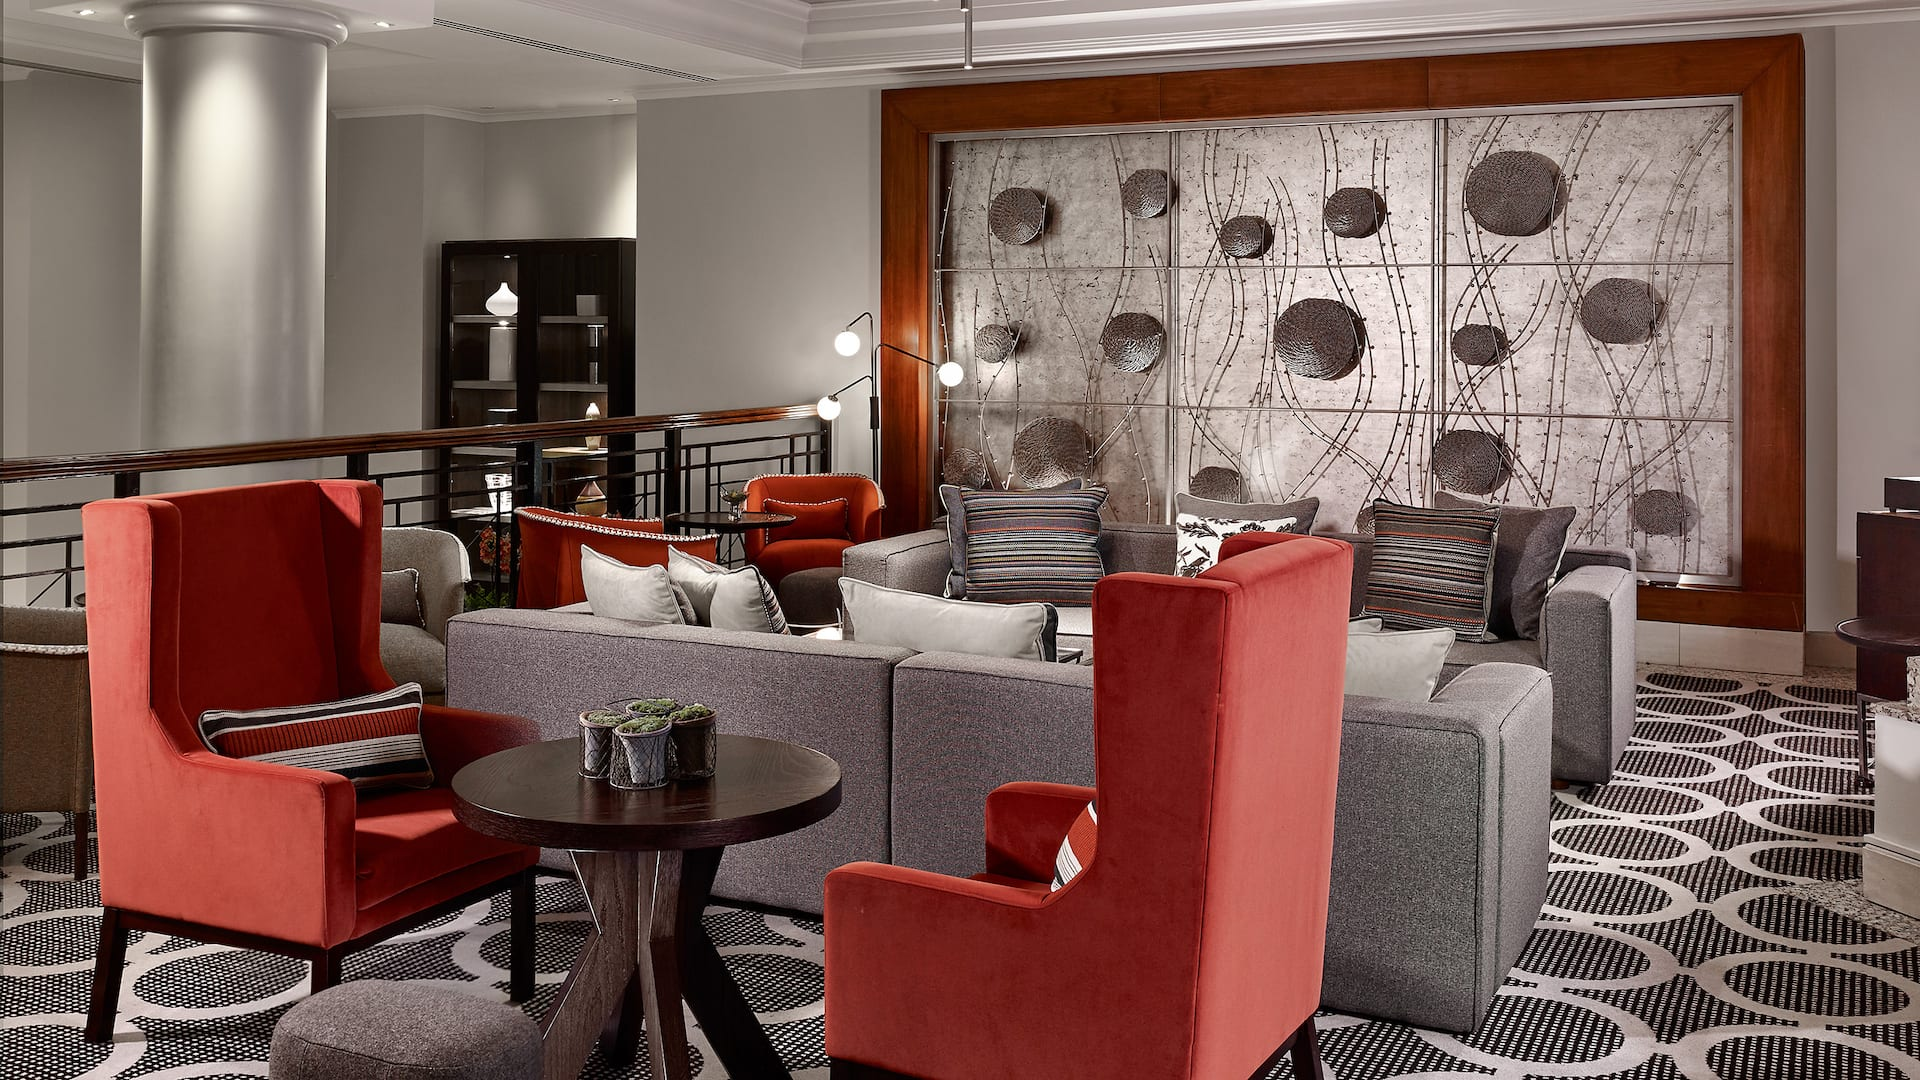 Lobby Area at Hyatt Regency Birmingham with comfy chairs and sofas